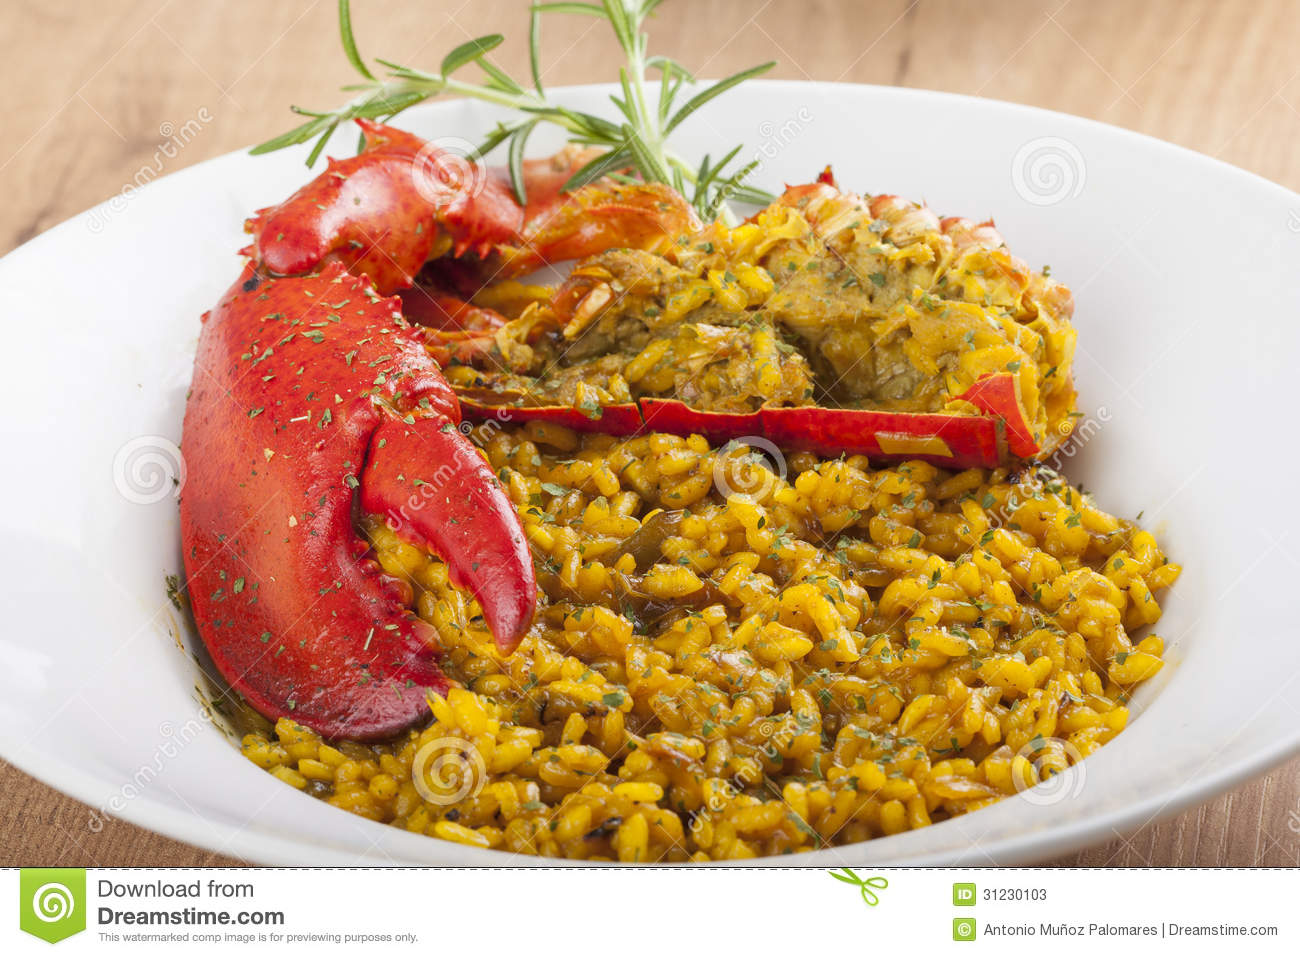 Clawed Lobster With Yellow Rice Stock Image - Image: 31230103